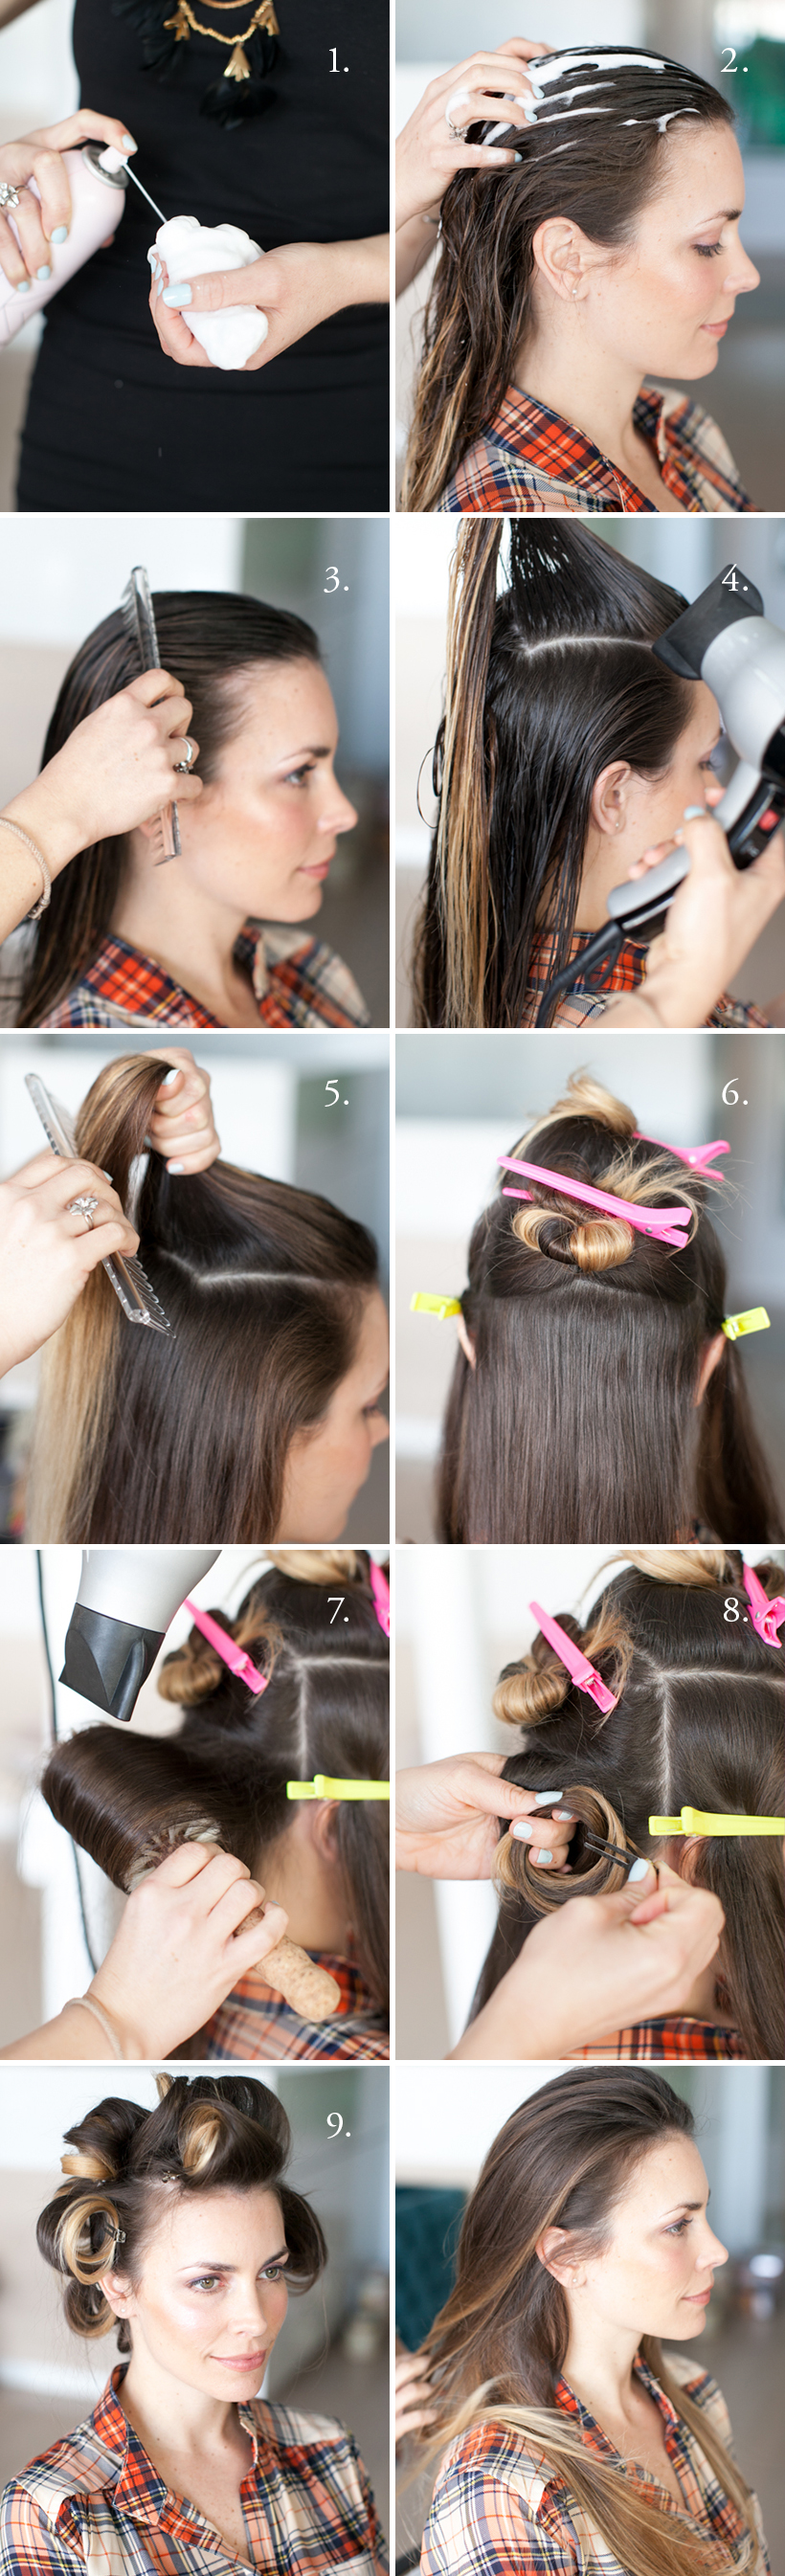 DIY Blowout Tutorial   Camille Styles